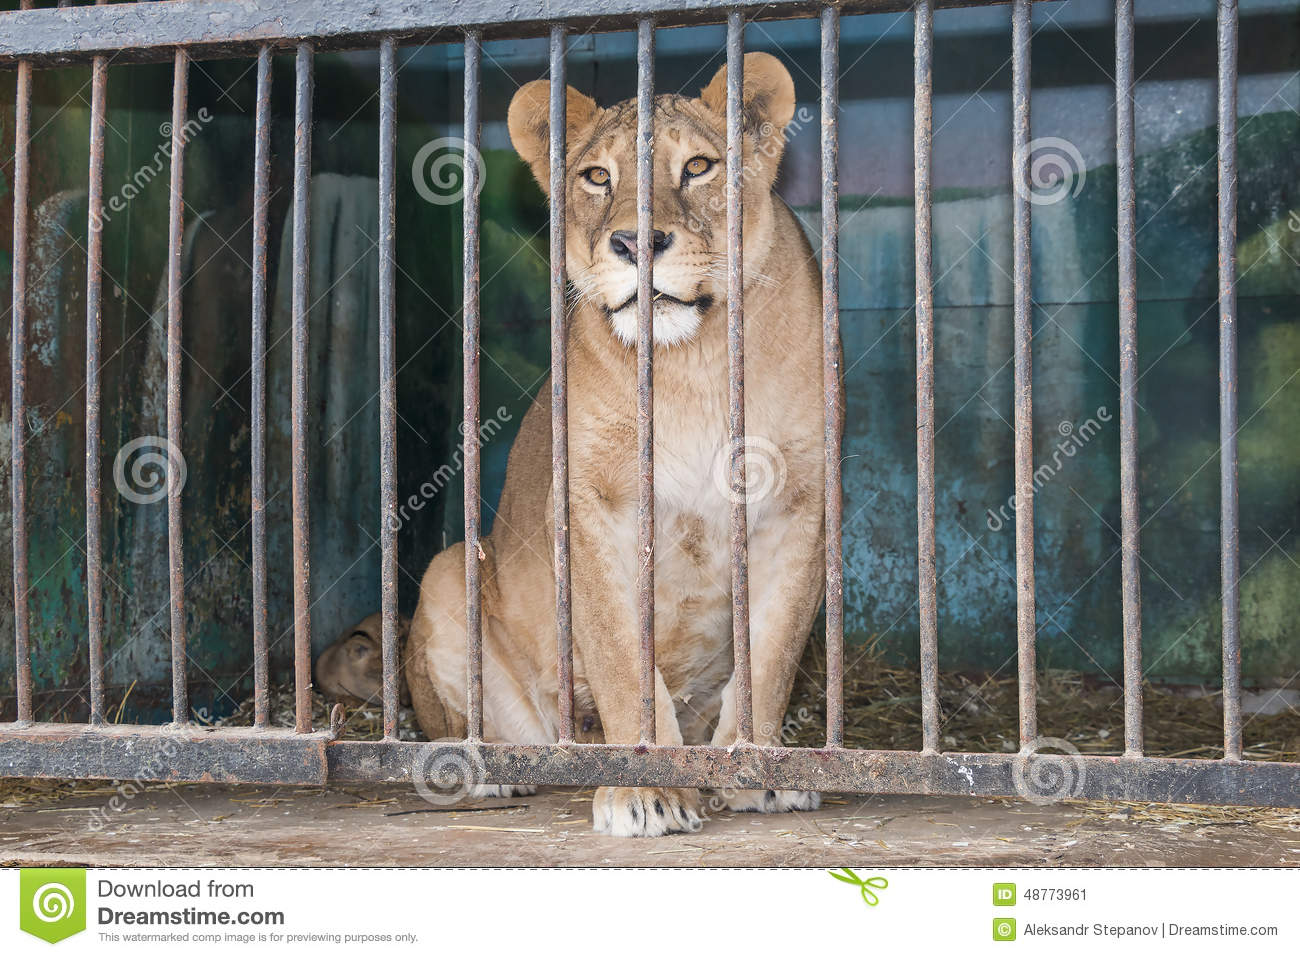 zoo or prison Are zoos simply bleak prisons for wild i do kind of feel the zoo is a prison for wild i do not believe that zoos are simply bleak prisons for wild animals.